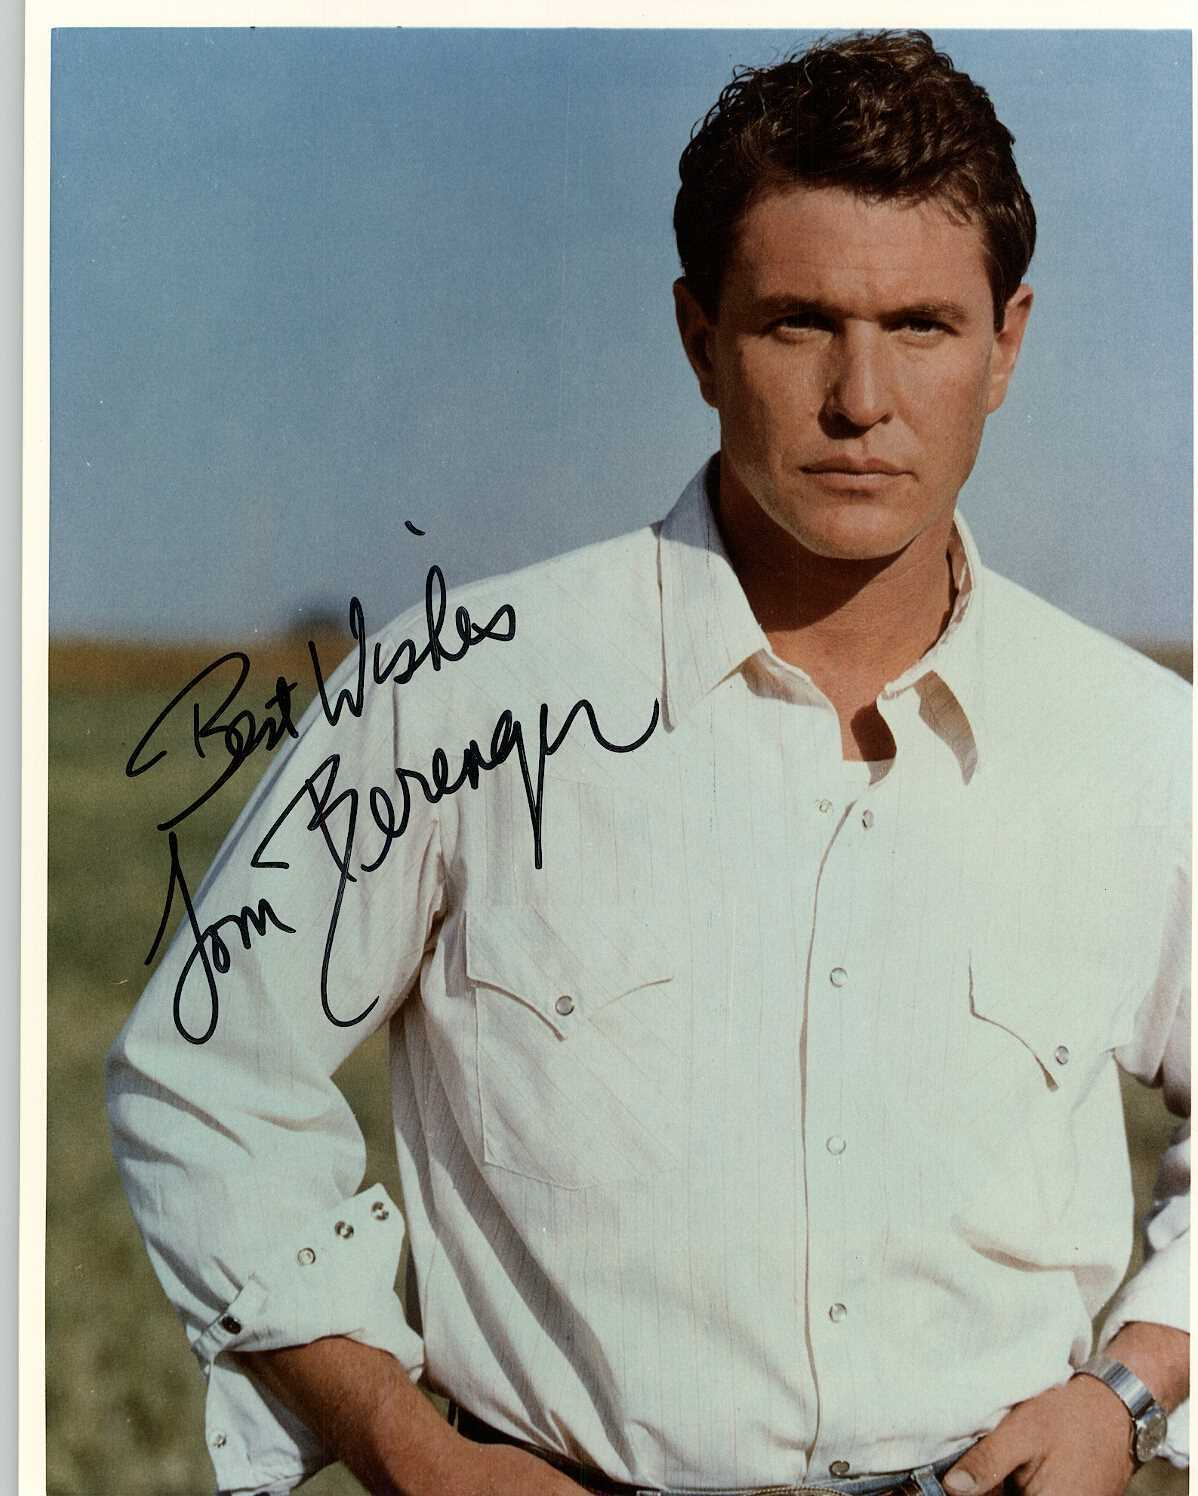 Primary image for Tom Berenger Signed Autographed Glossy 8x10 Photo